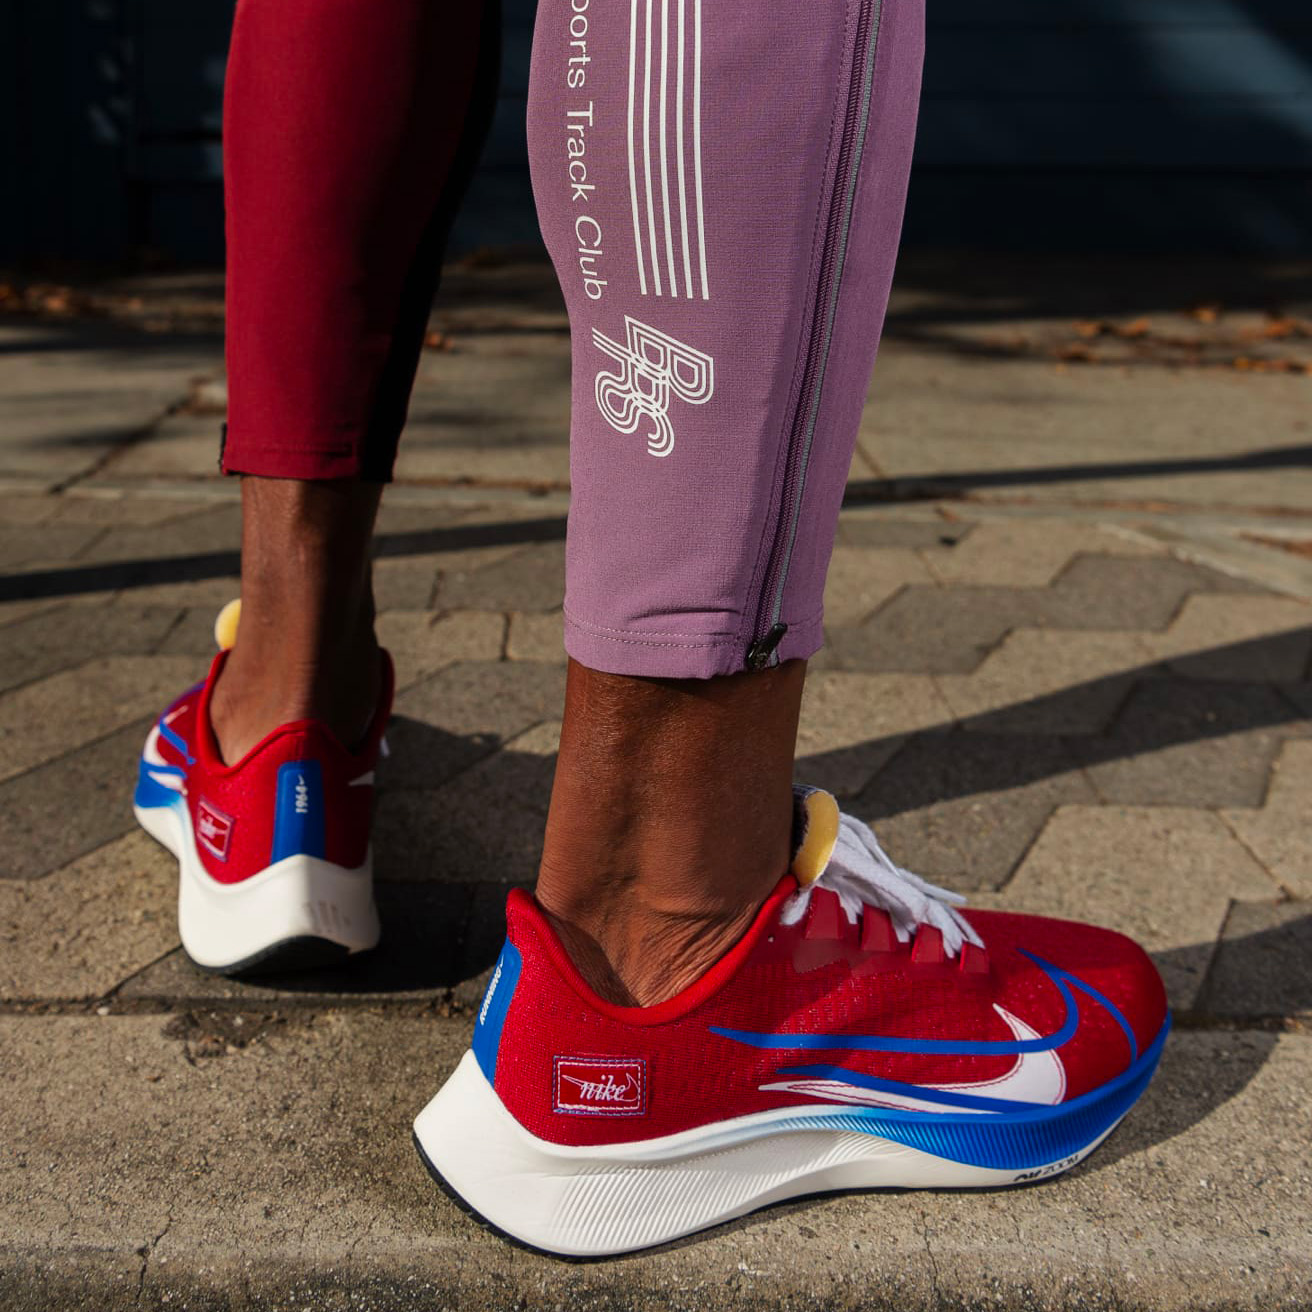 Nike Air Zoom Pegasus 37 Premium - Gym Red/Game Royal/White/Sail